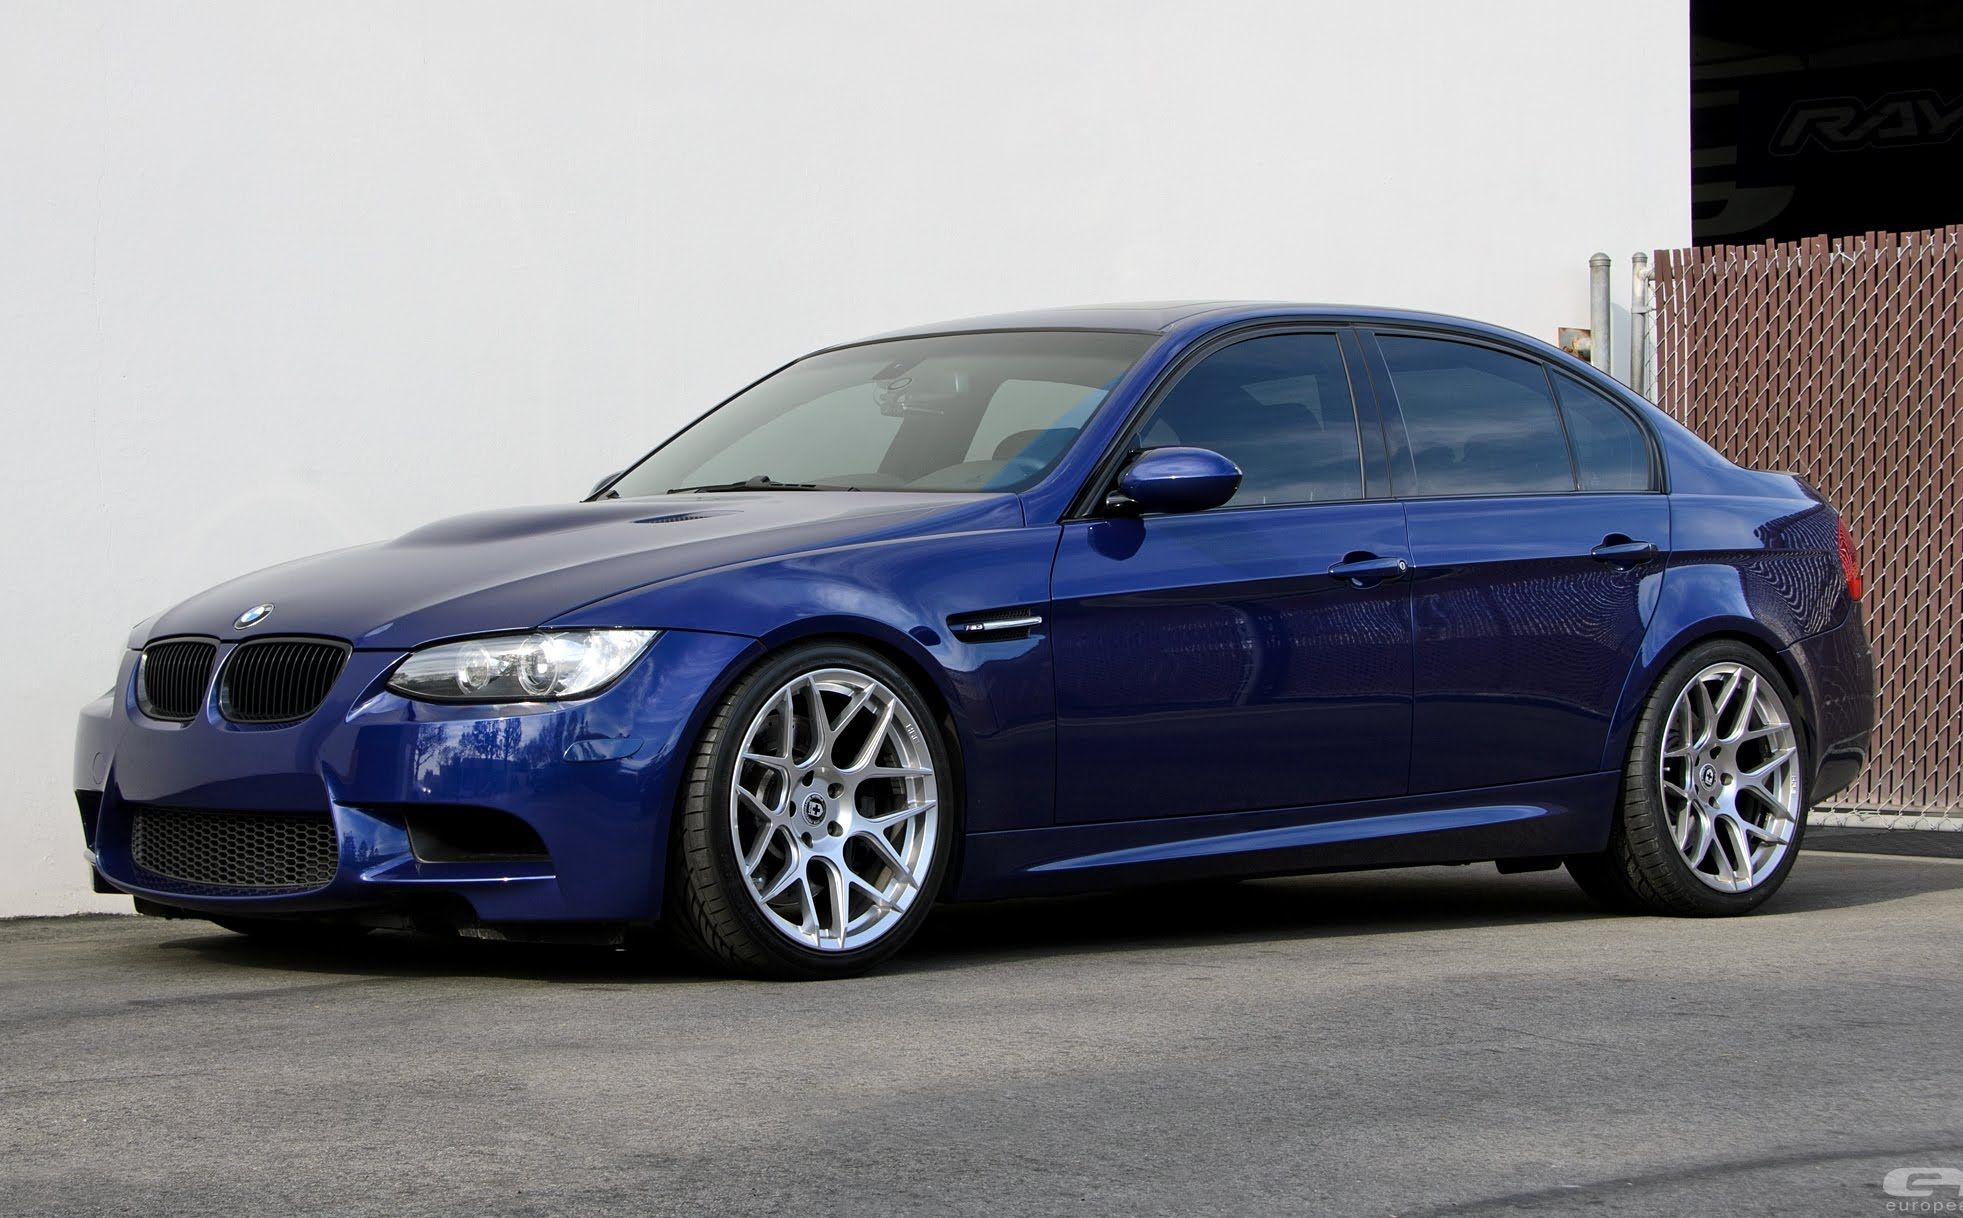 eas bmw e90 m3 on hre wheels bmw pinterest bmw car photos and wheels. Black Bedroom Furniture Sets. Home Design Ideas